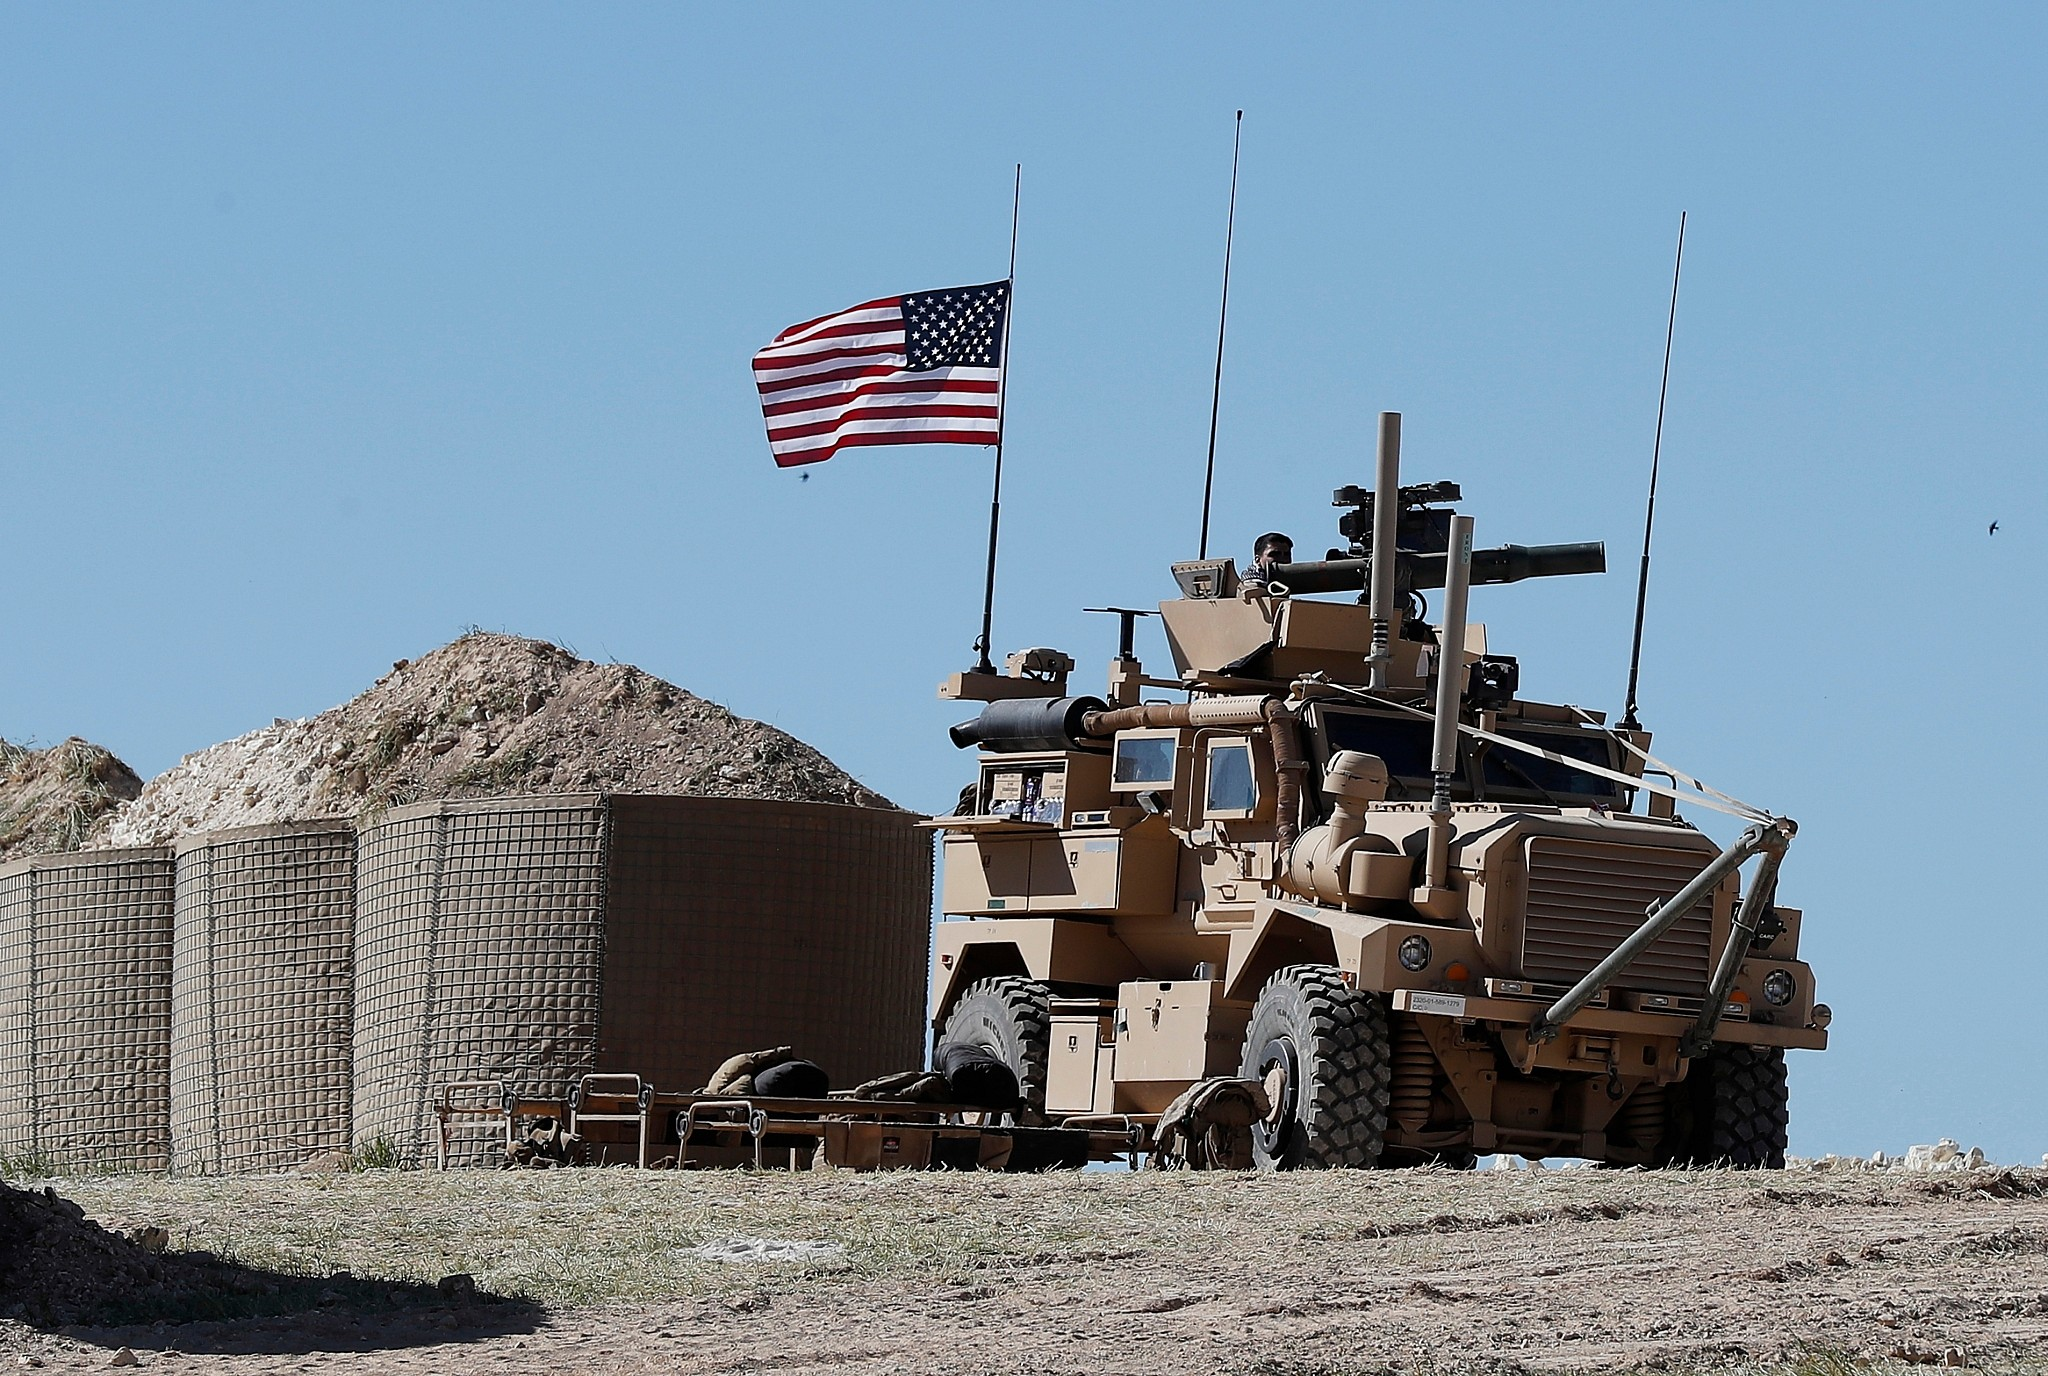 Why is the US withdrawing troops?